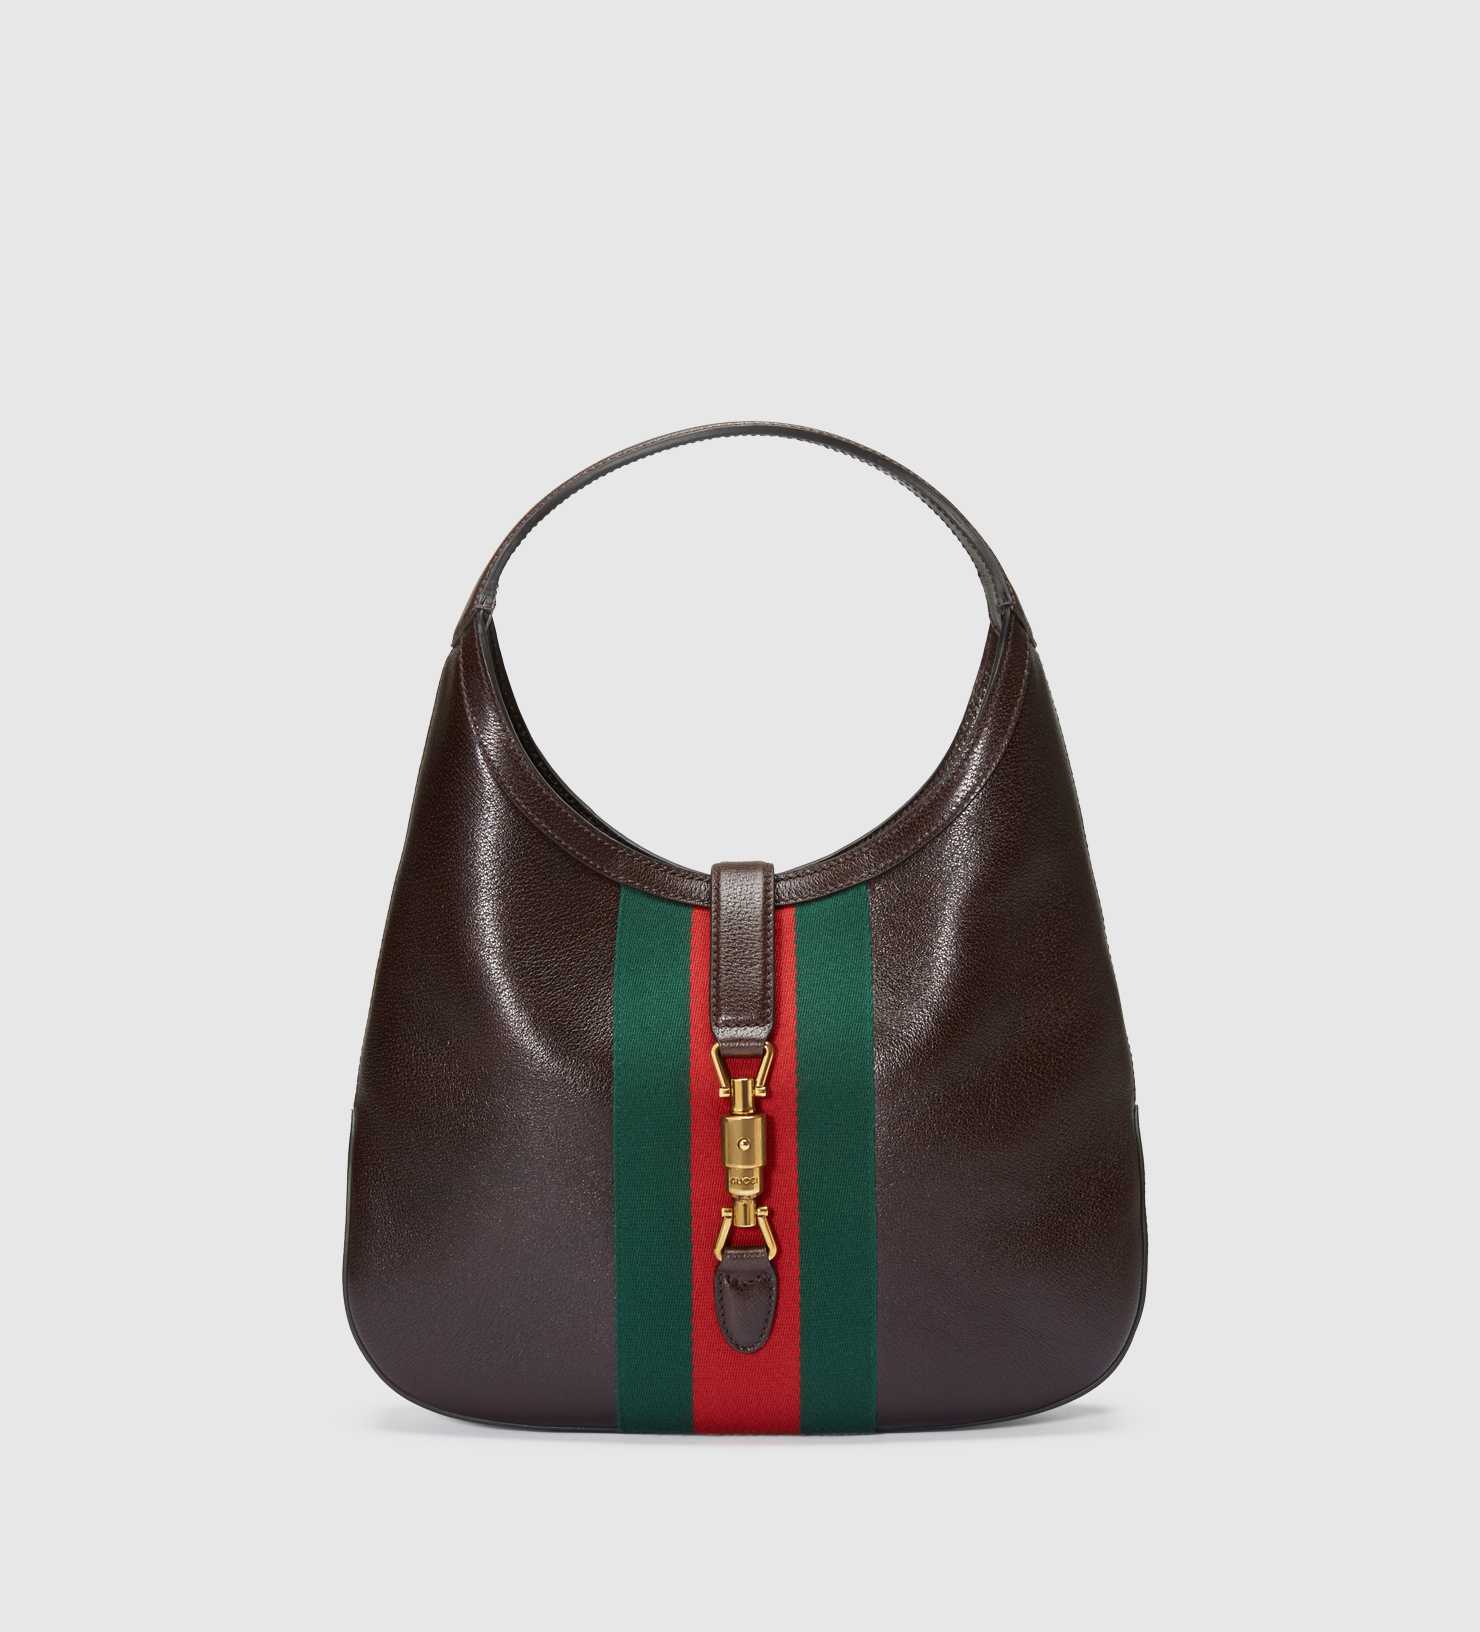 Gucci Jackie Soft Leather Hobo in Brown - Lyst bfd3110962